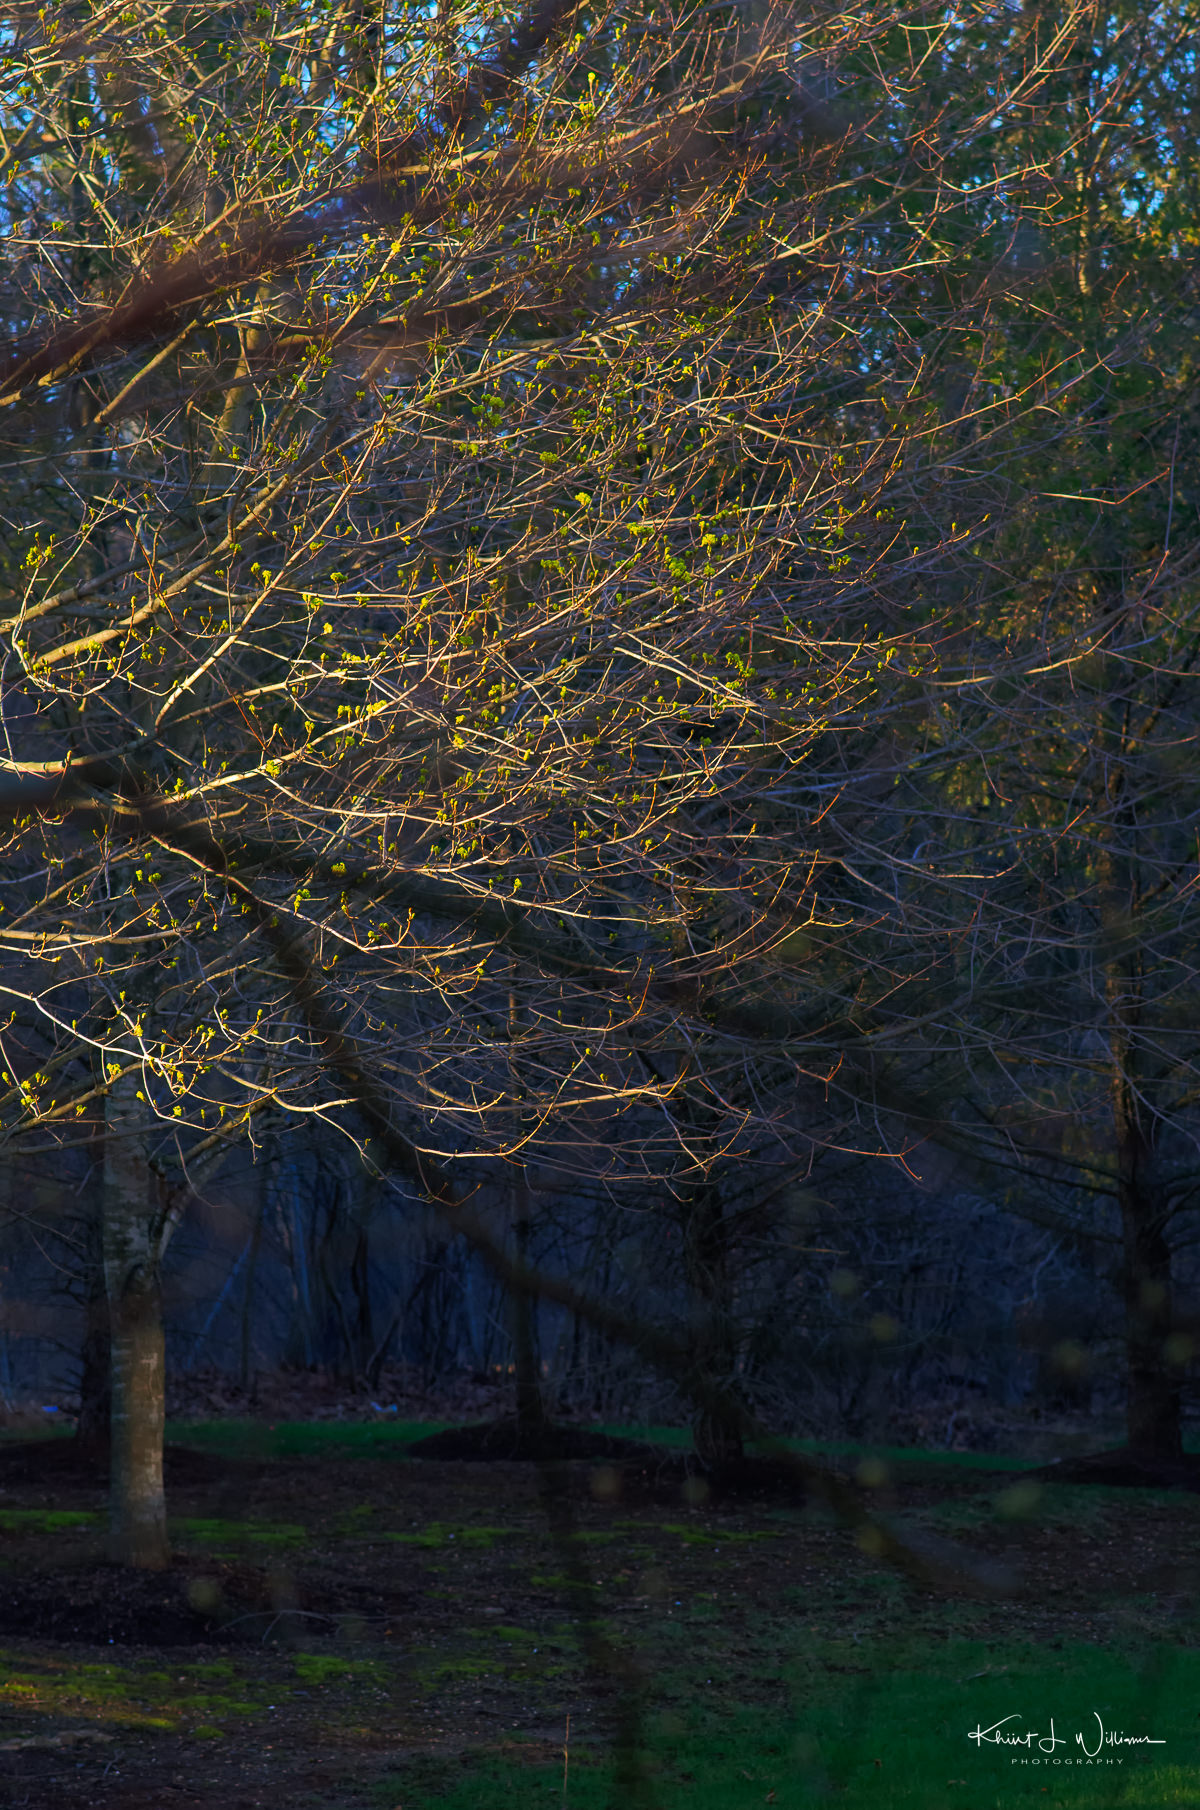 Morning, Tree, Leaves, Light